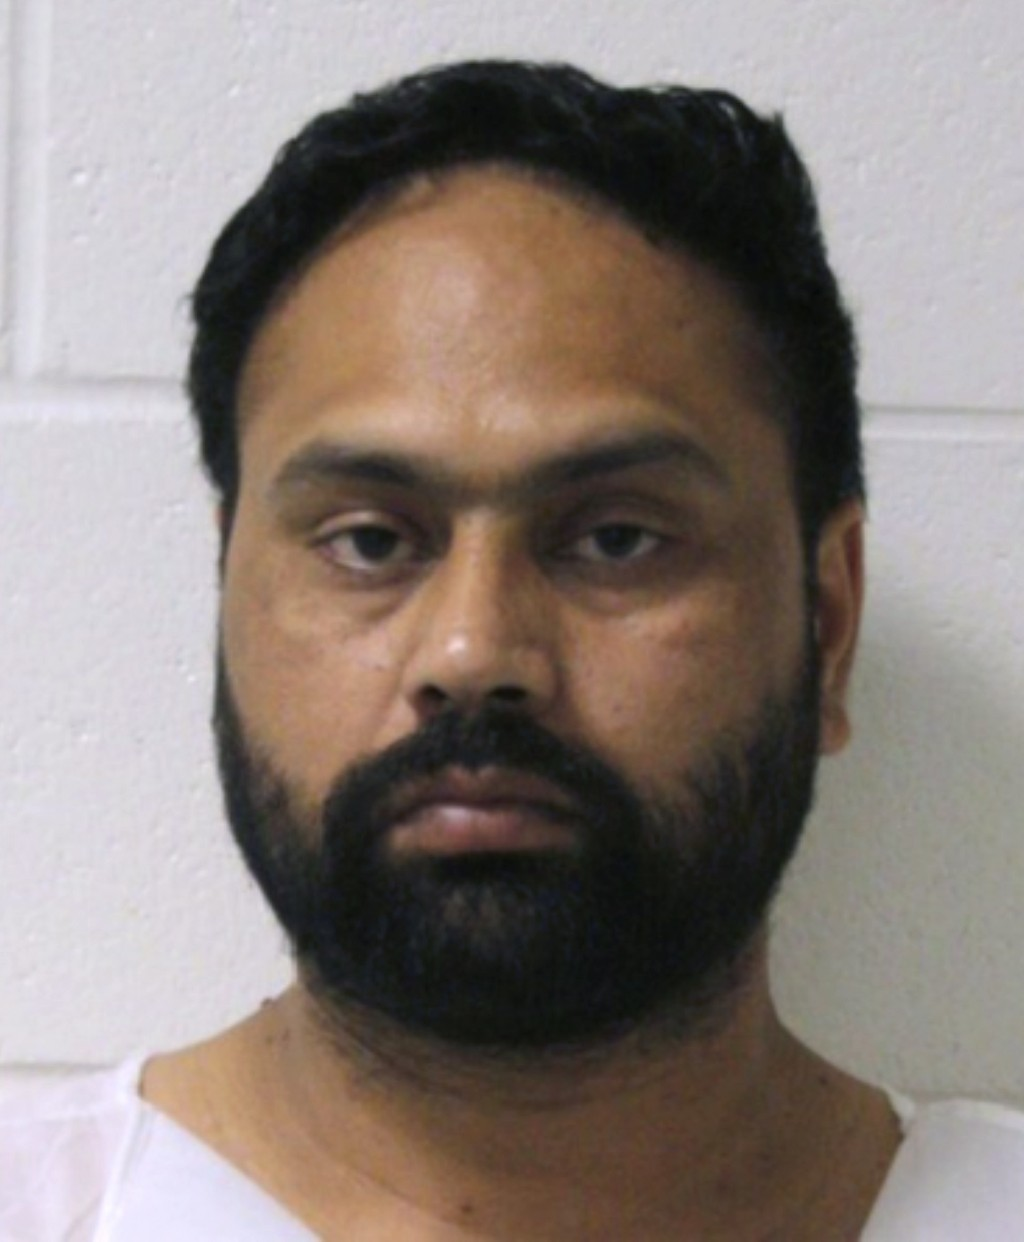 FILE - This booking photo released by the Branford Police Department shows Gurpreet Singh, arrested Tuesday, July 2, 2019, in Branford, Conn. Butler C...